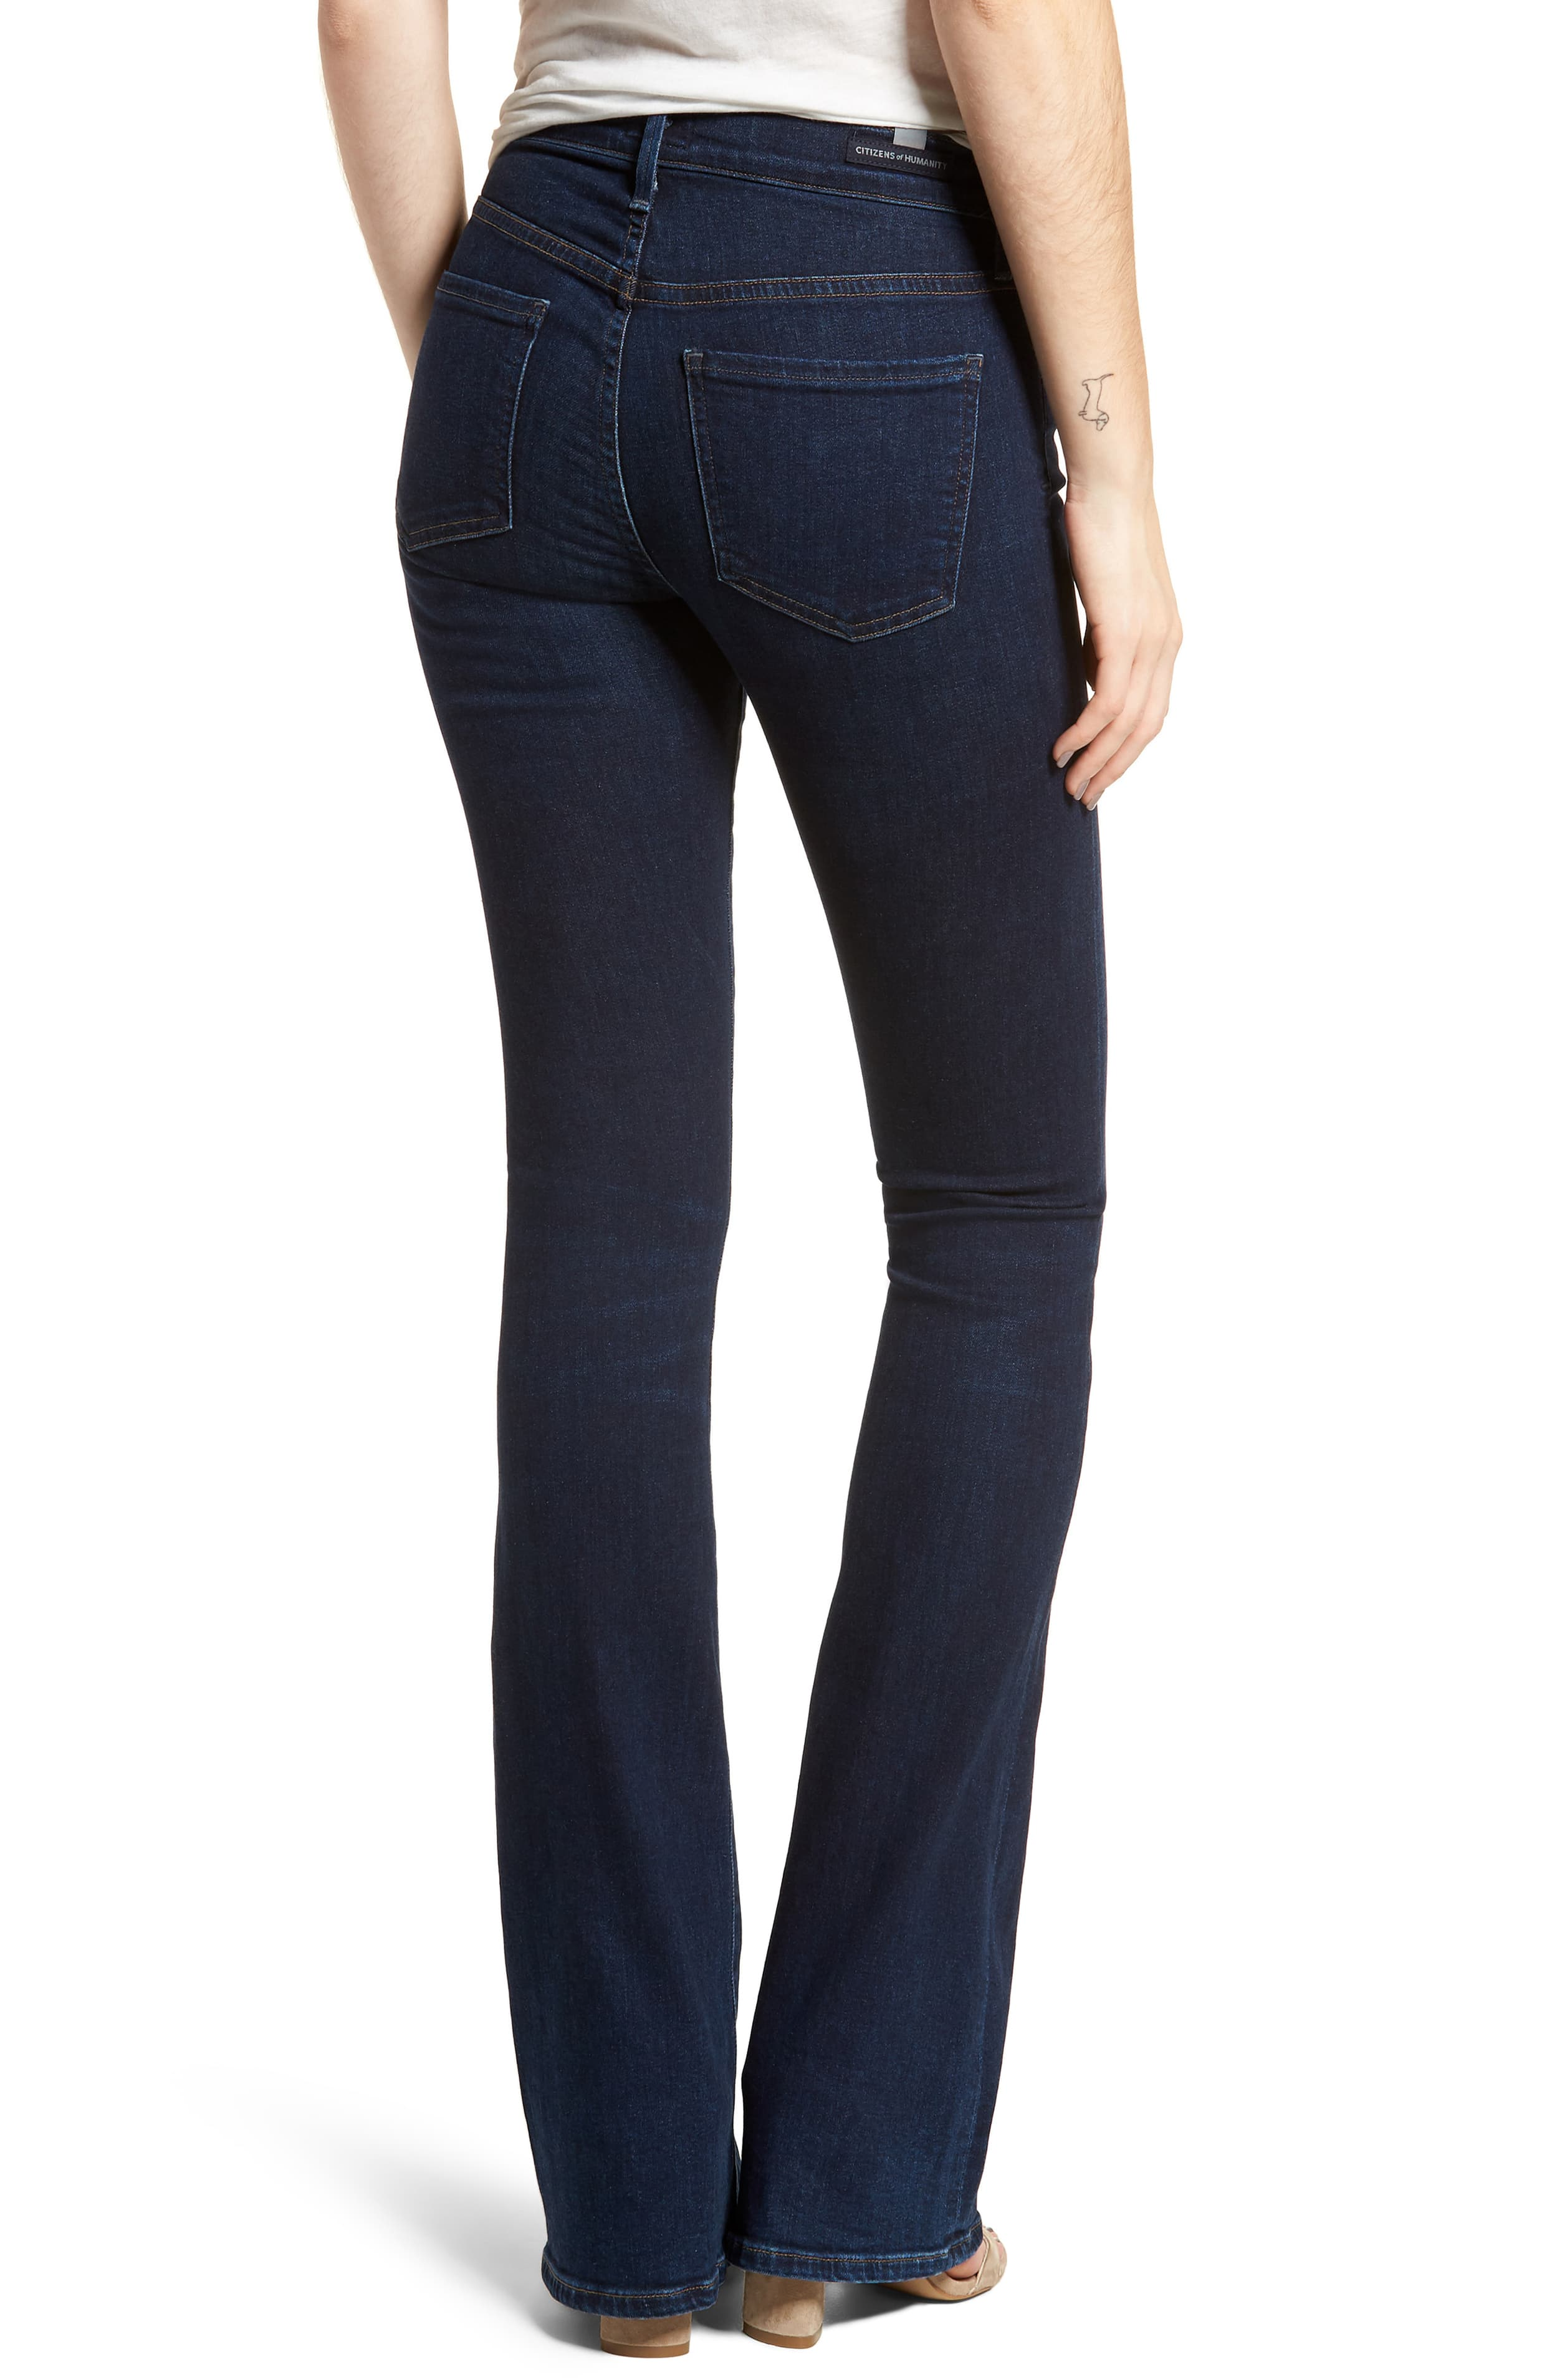 Emannuelle Boot Cut Jean in Galaxy (Long Length)